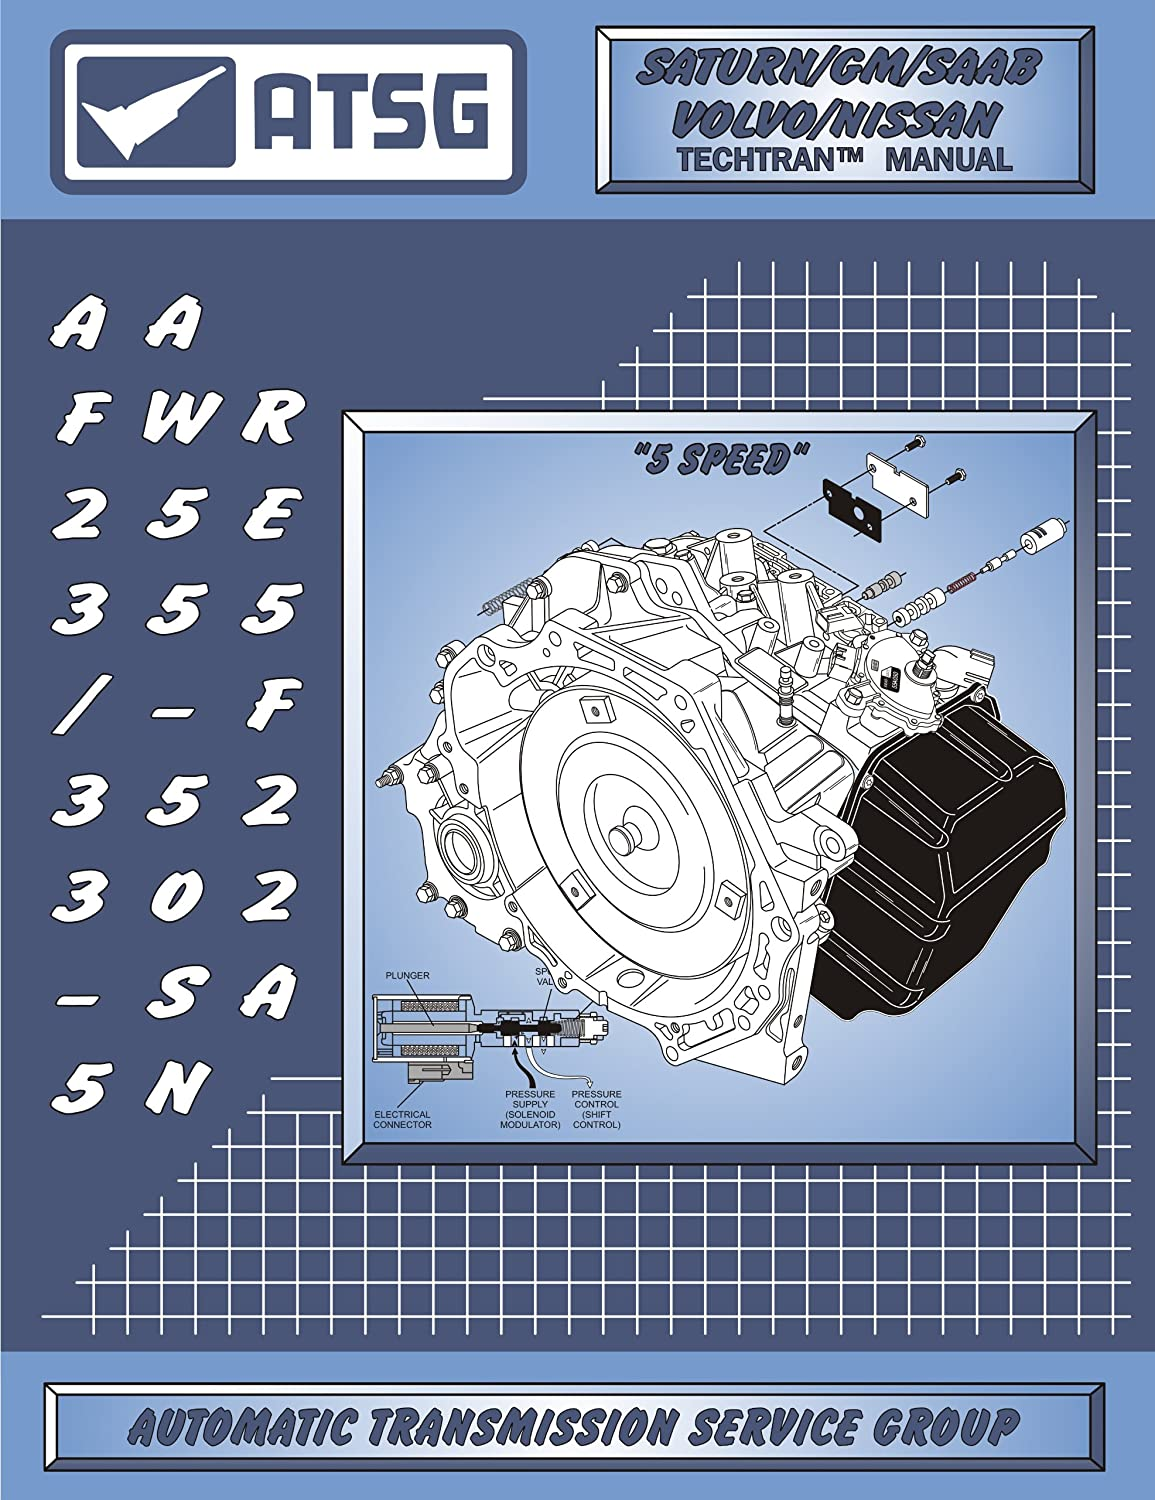 Amazon.com: ATSG AW55-50/51SN/AF23/33-5/RE5F22A Automatic Transmission Repair  Manual (AW55-50SN - AW55-50SN Valve Body - Best Repair Book Available!):